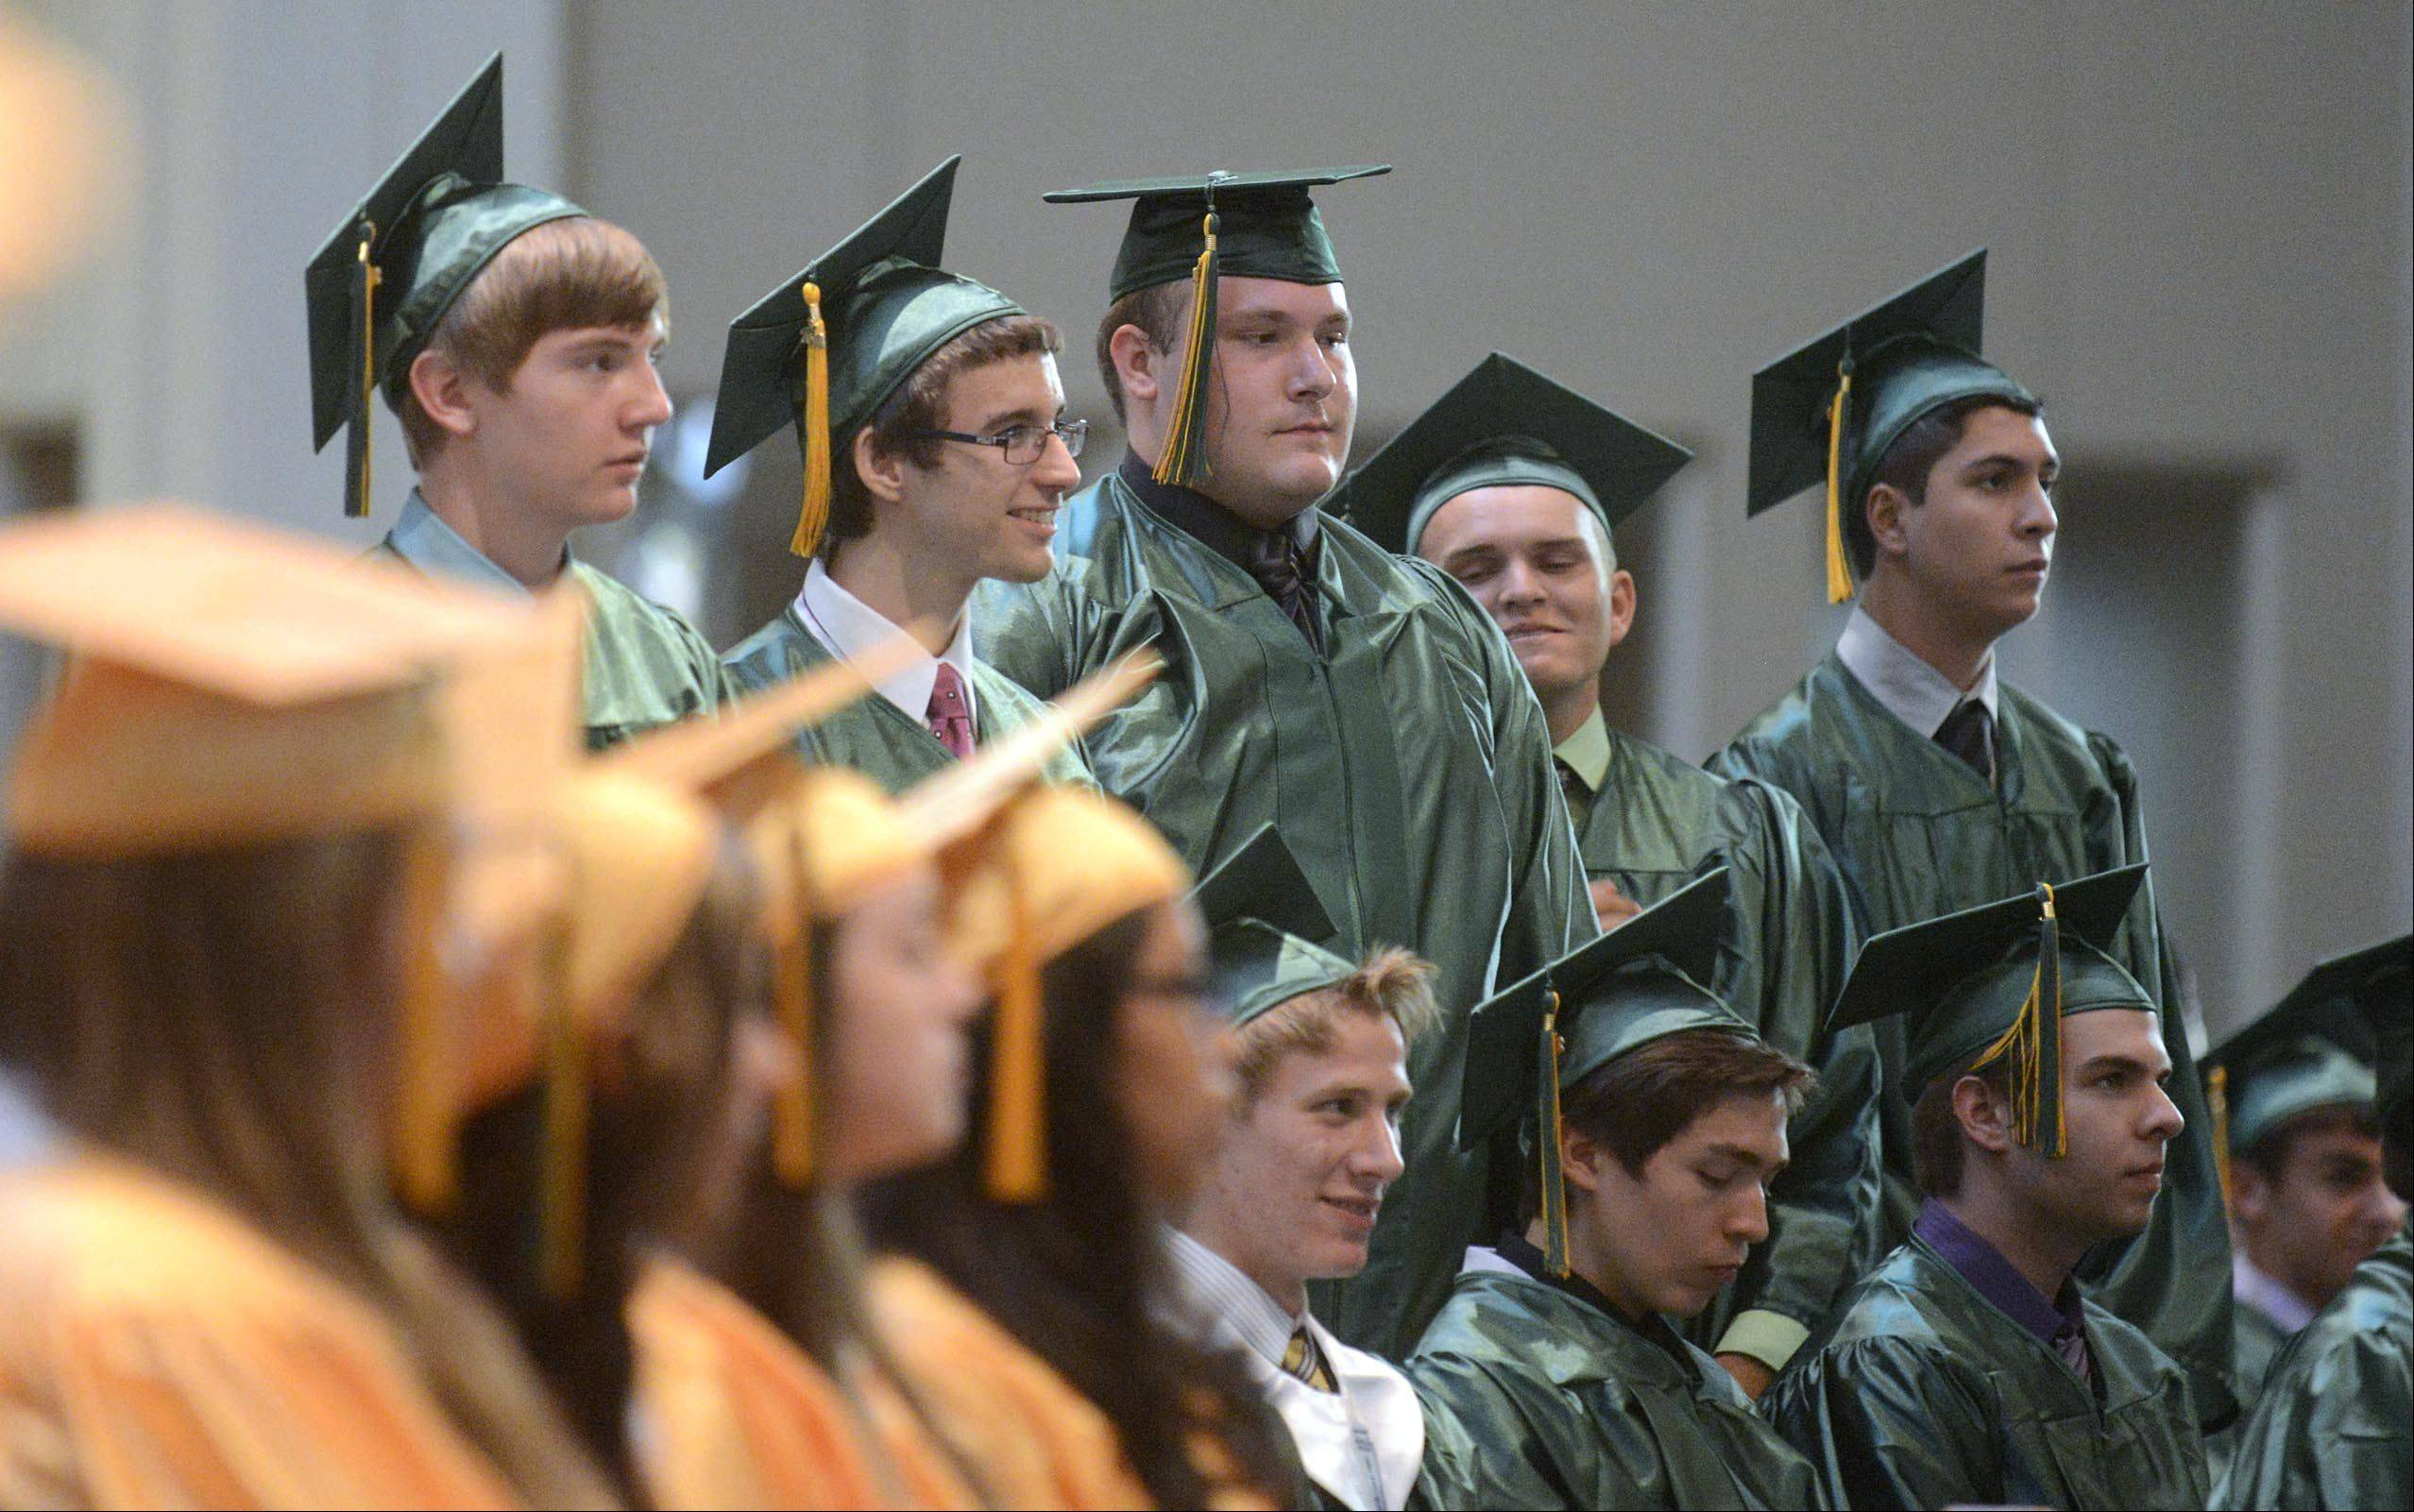 Images from the St. Edward High School graduation ceremony Tuesday, May 21, 2013 in St. Charles.